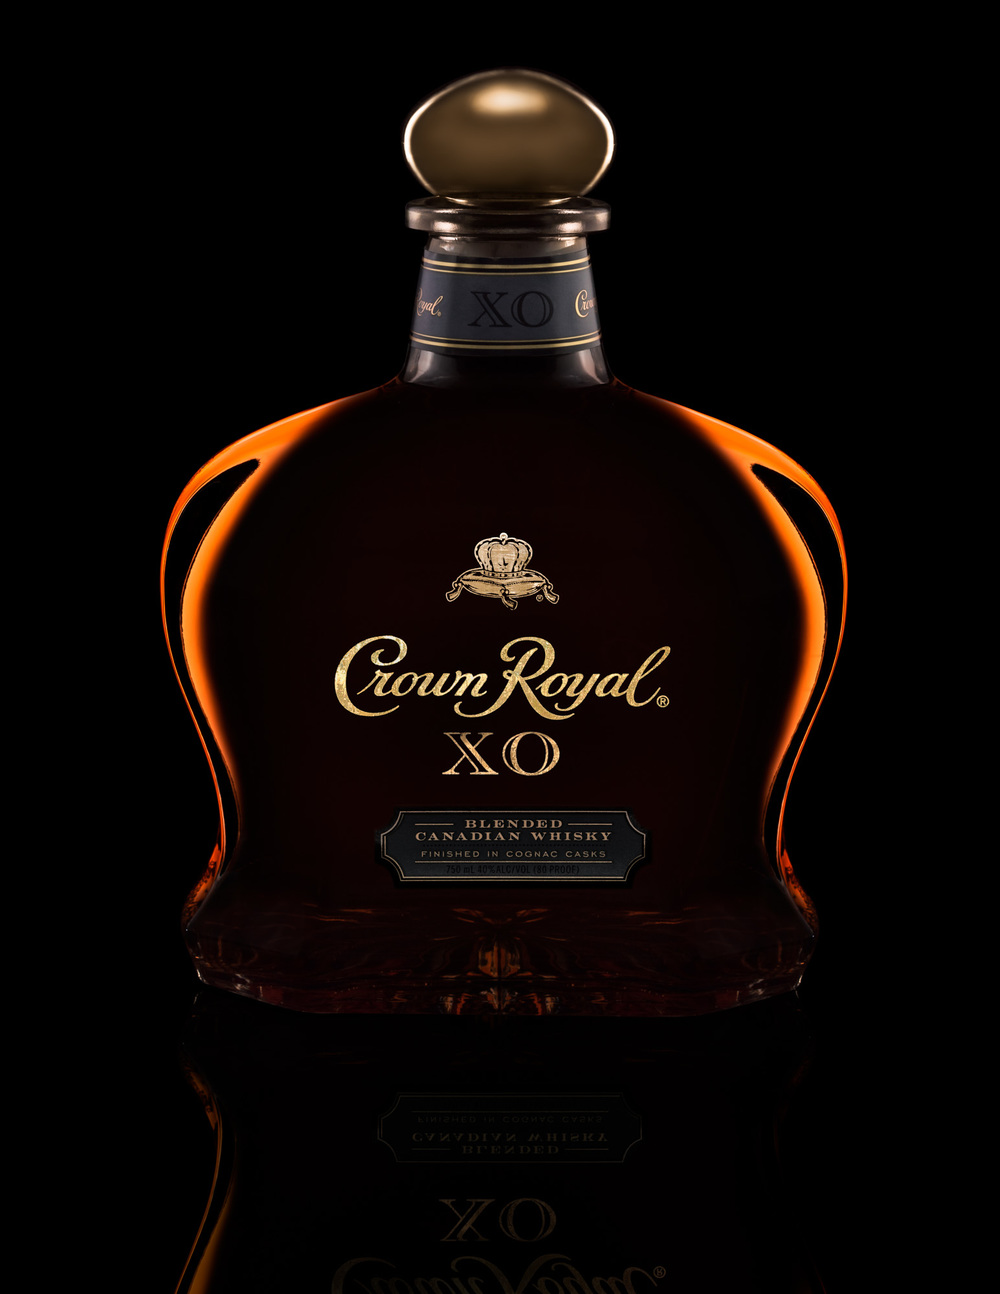 Crown Royal XO Bottle